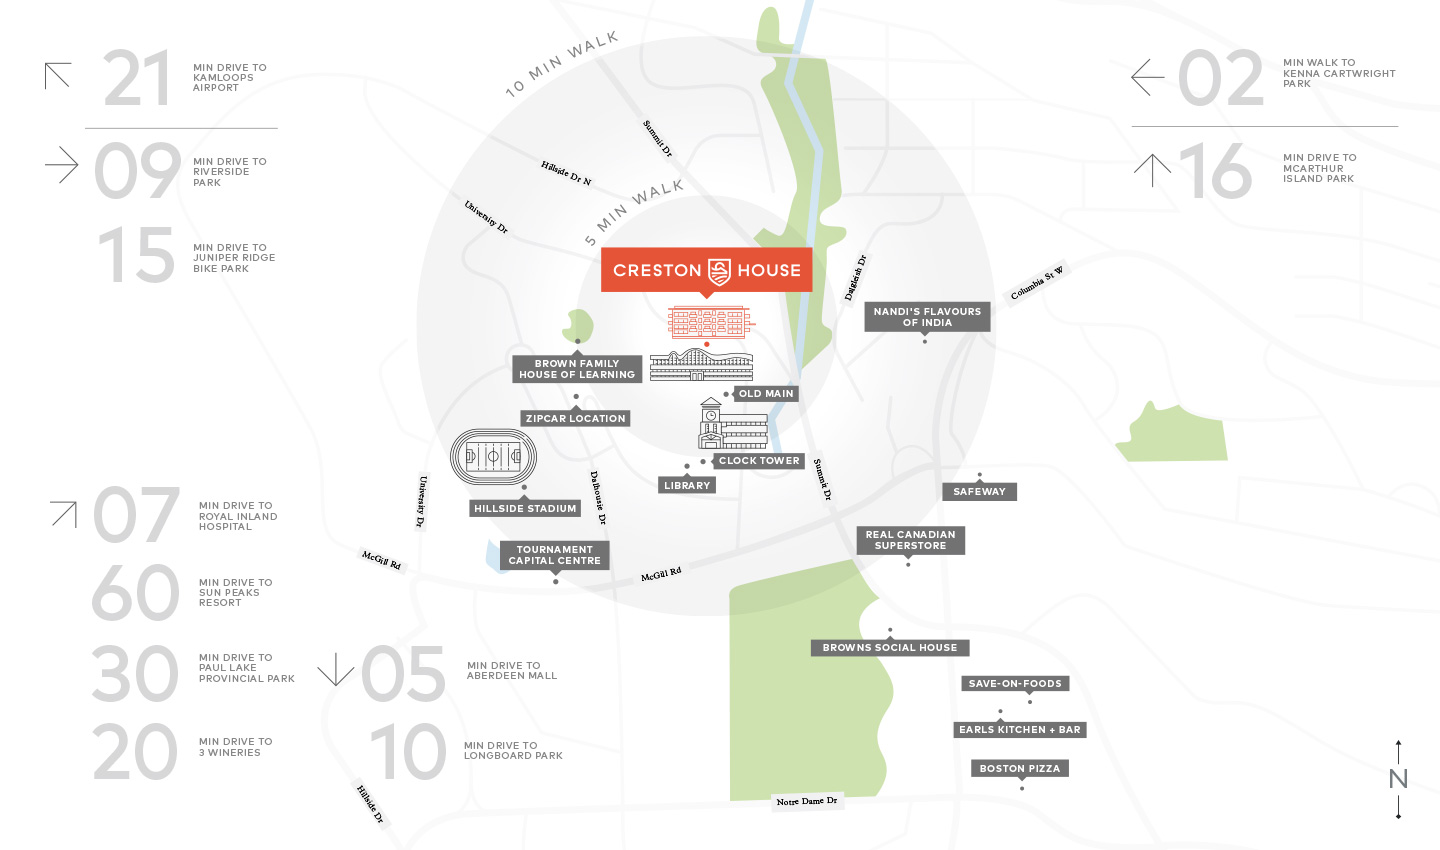 thompson rivers university community map - creston house